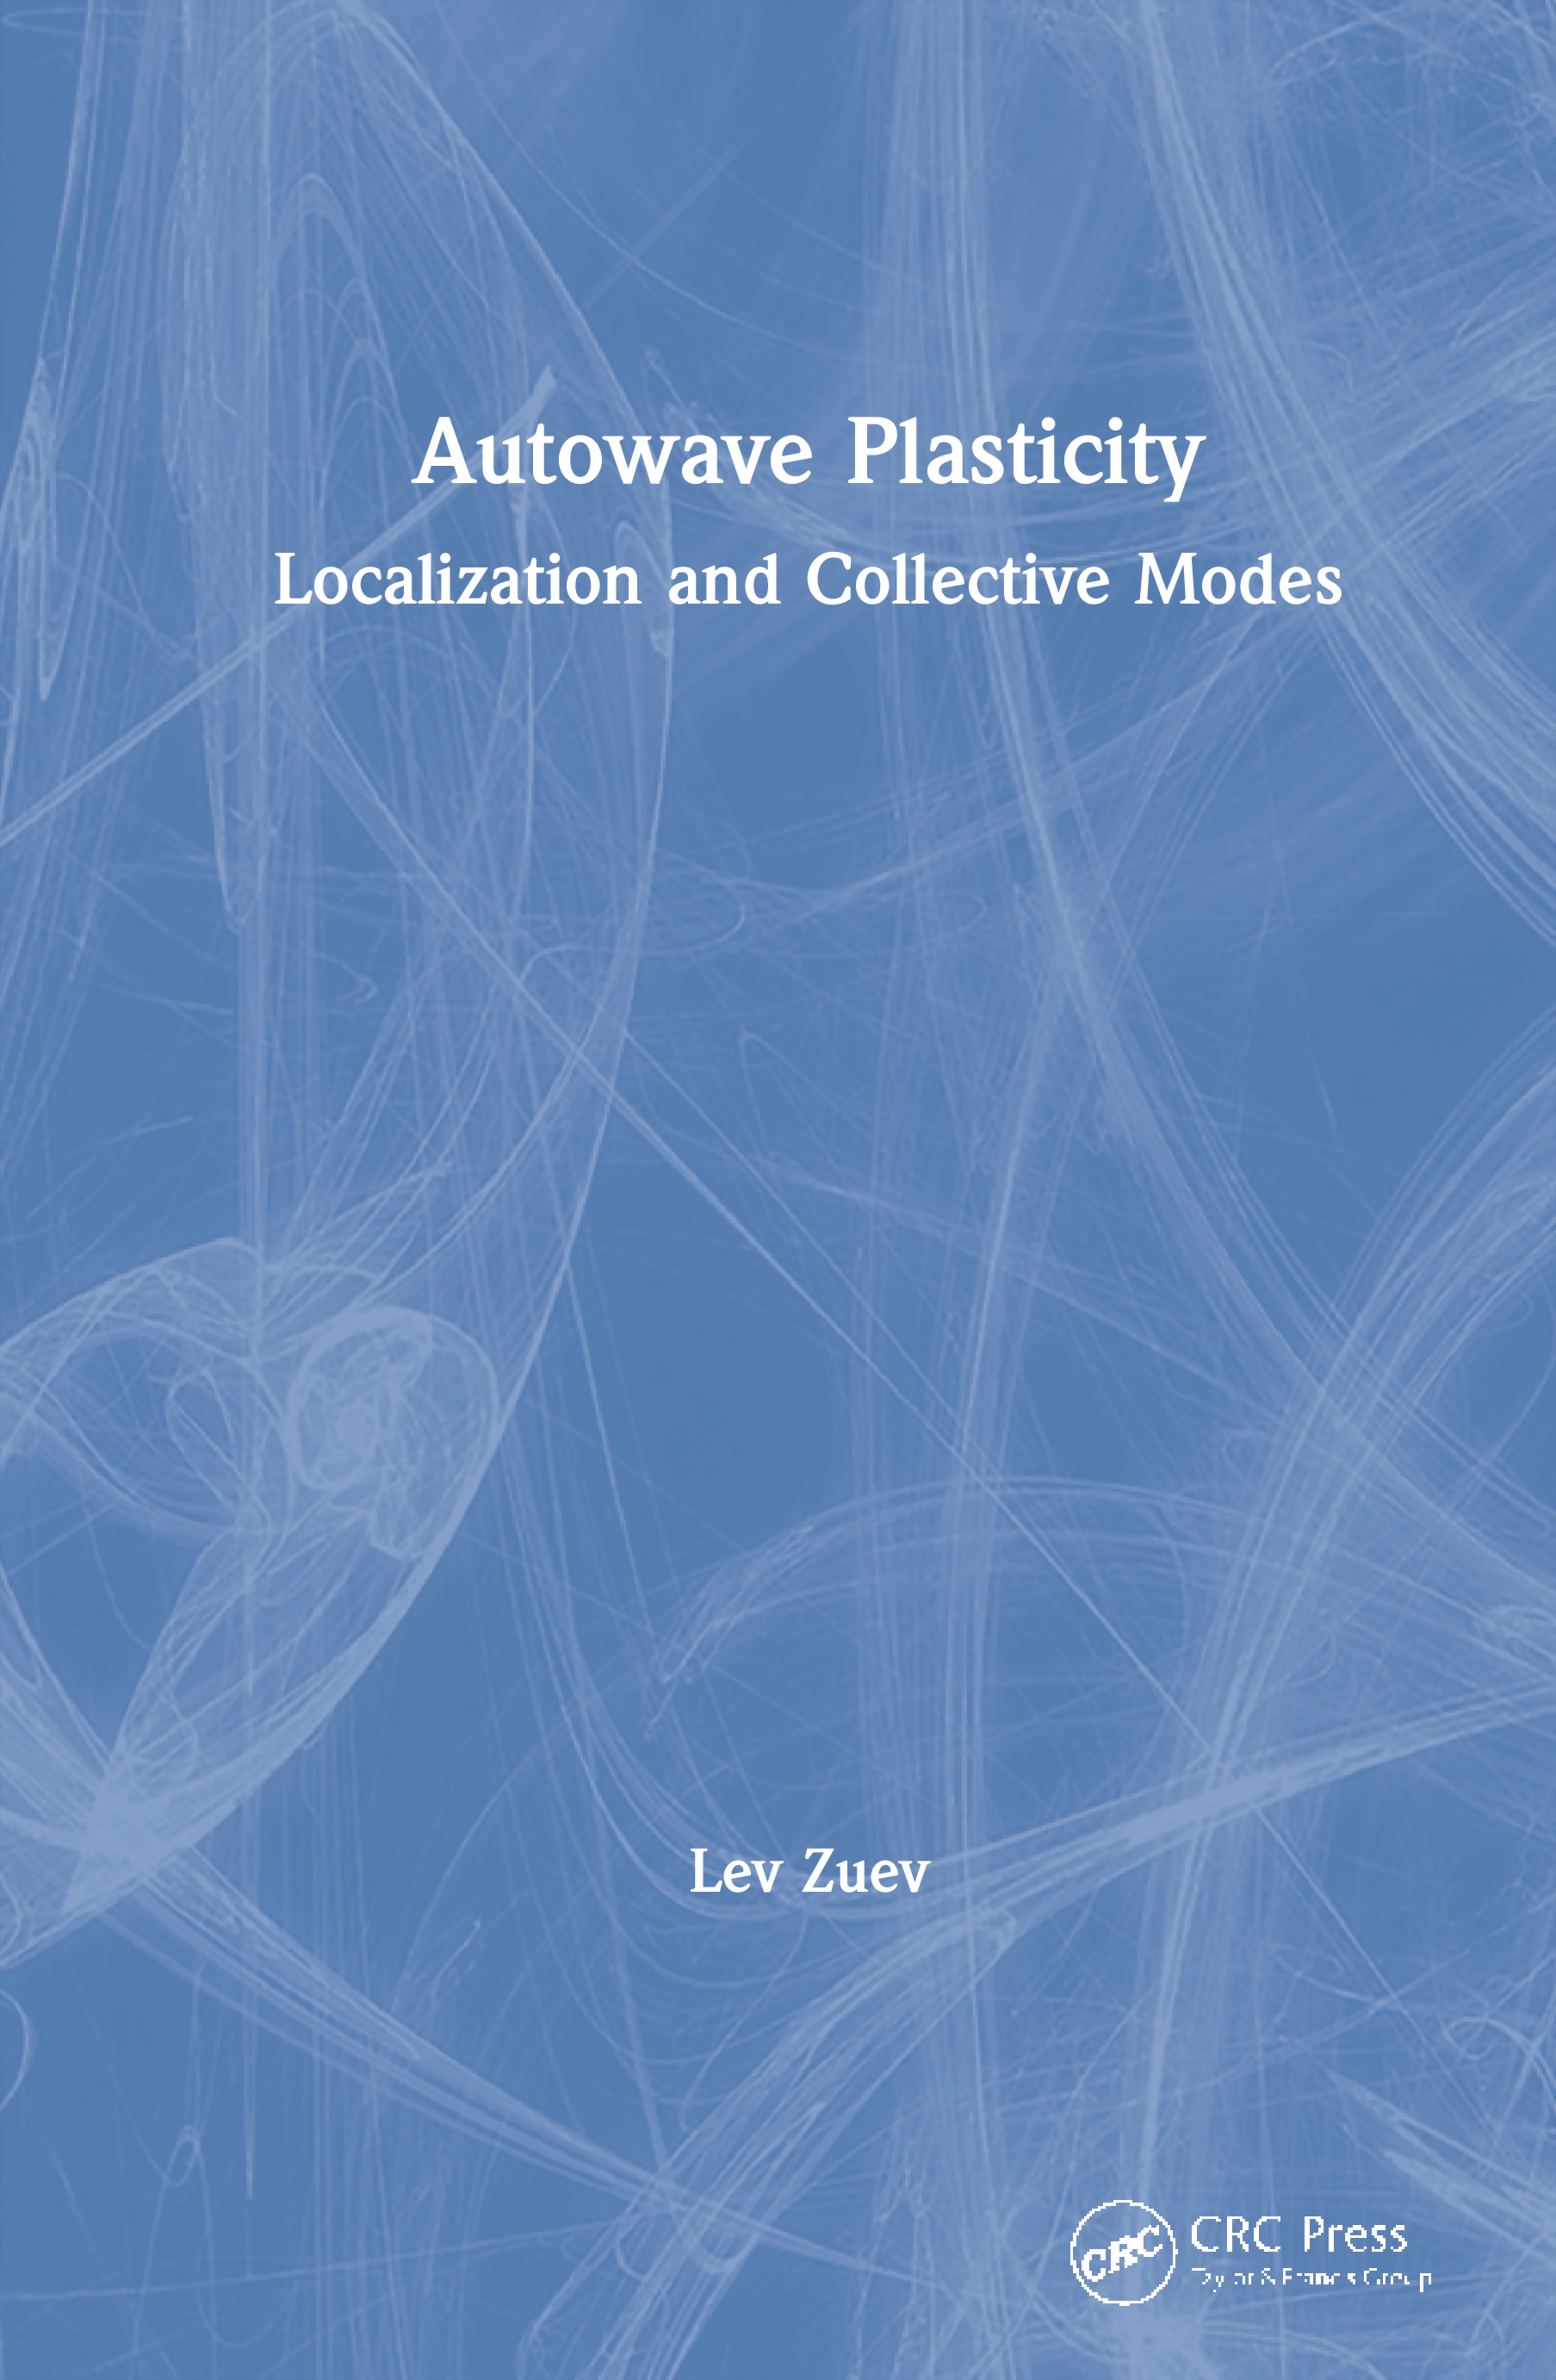 Autowave Plasticity: Localization and Collective Modes book cover